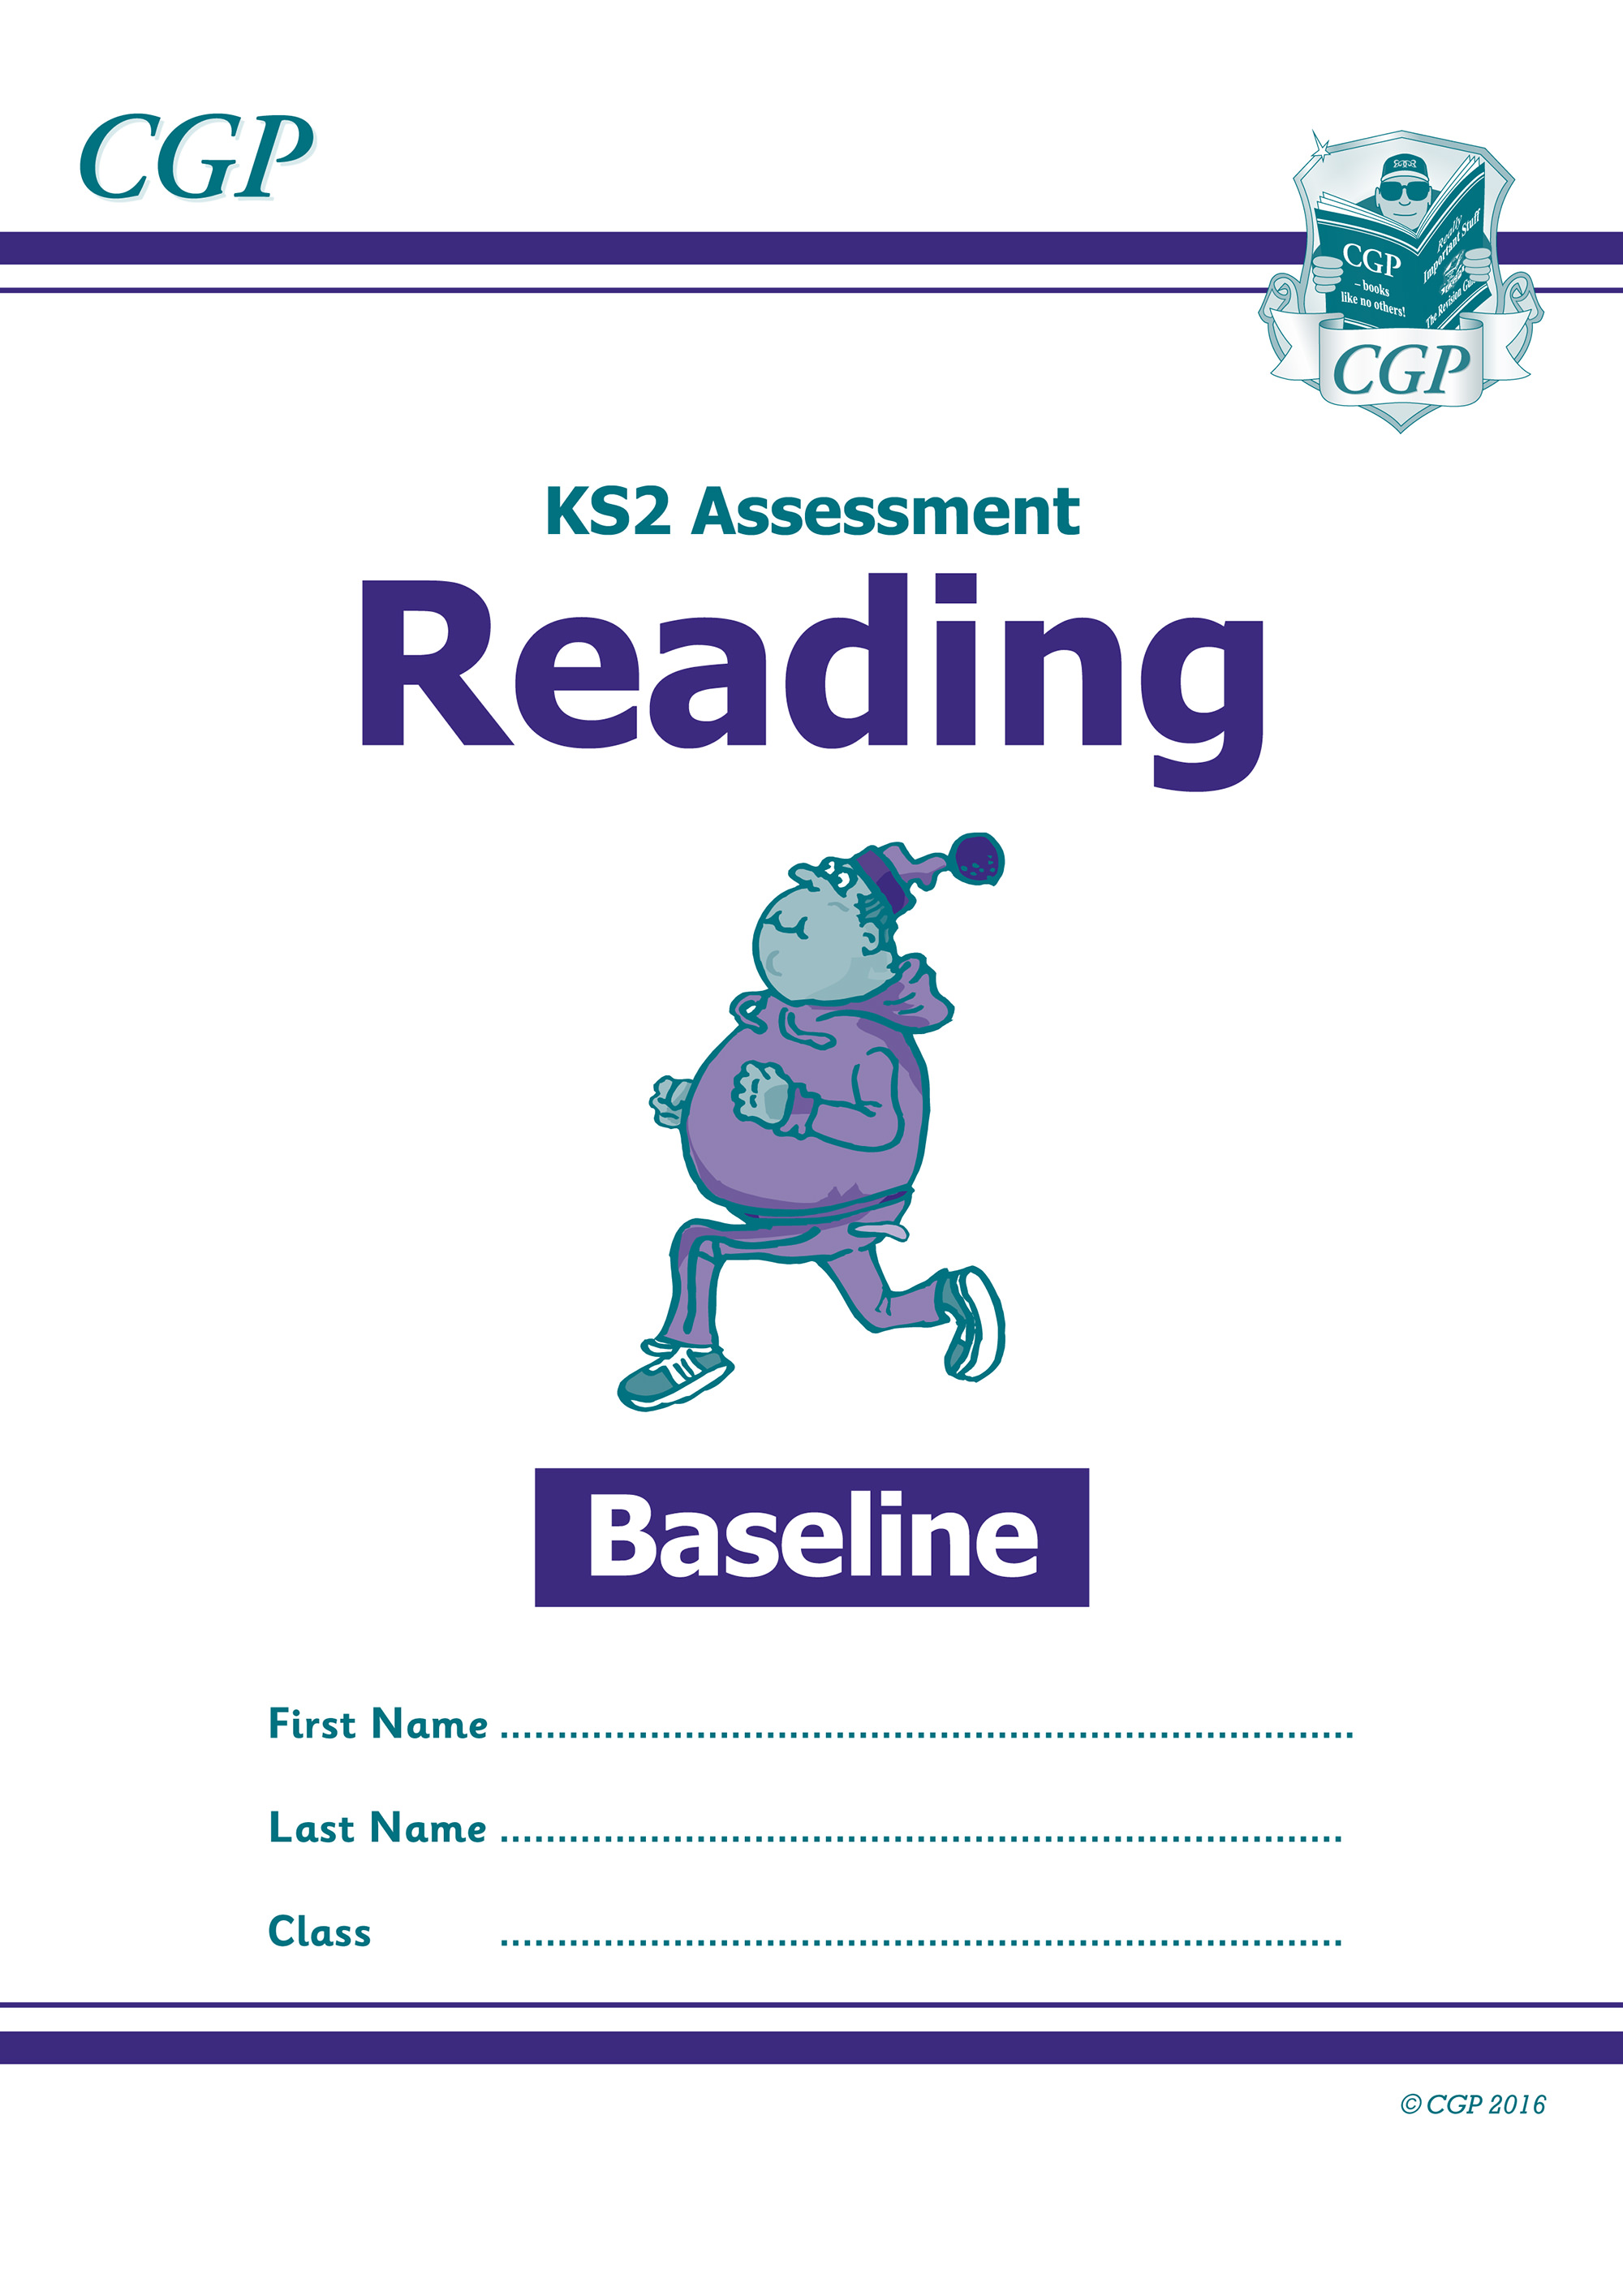 EBRP21 - KS2 Assessment: Reading - Baseline Test